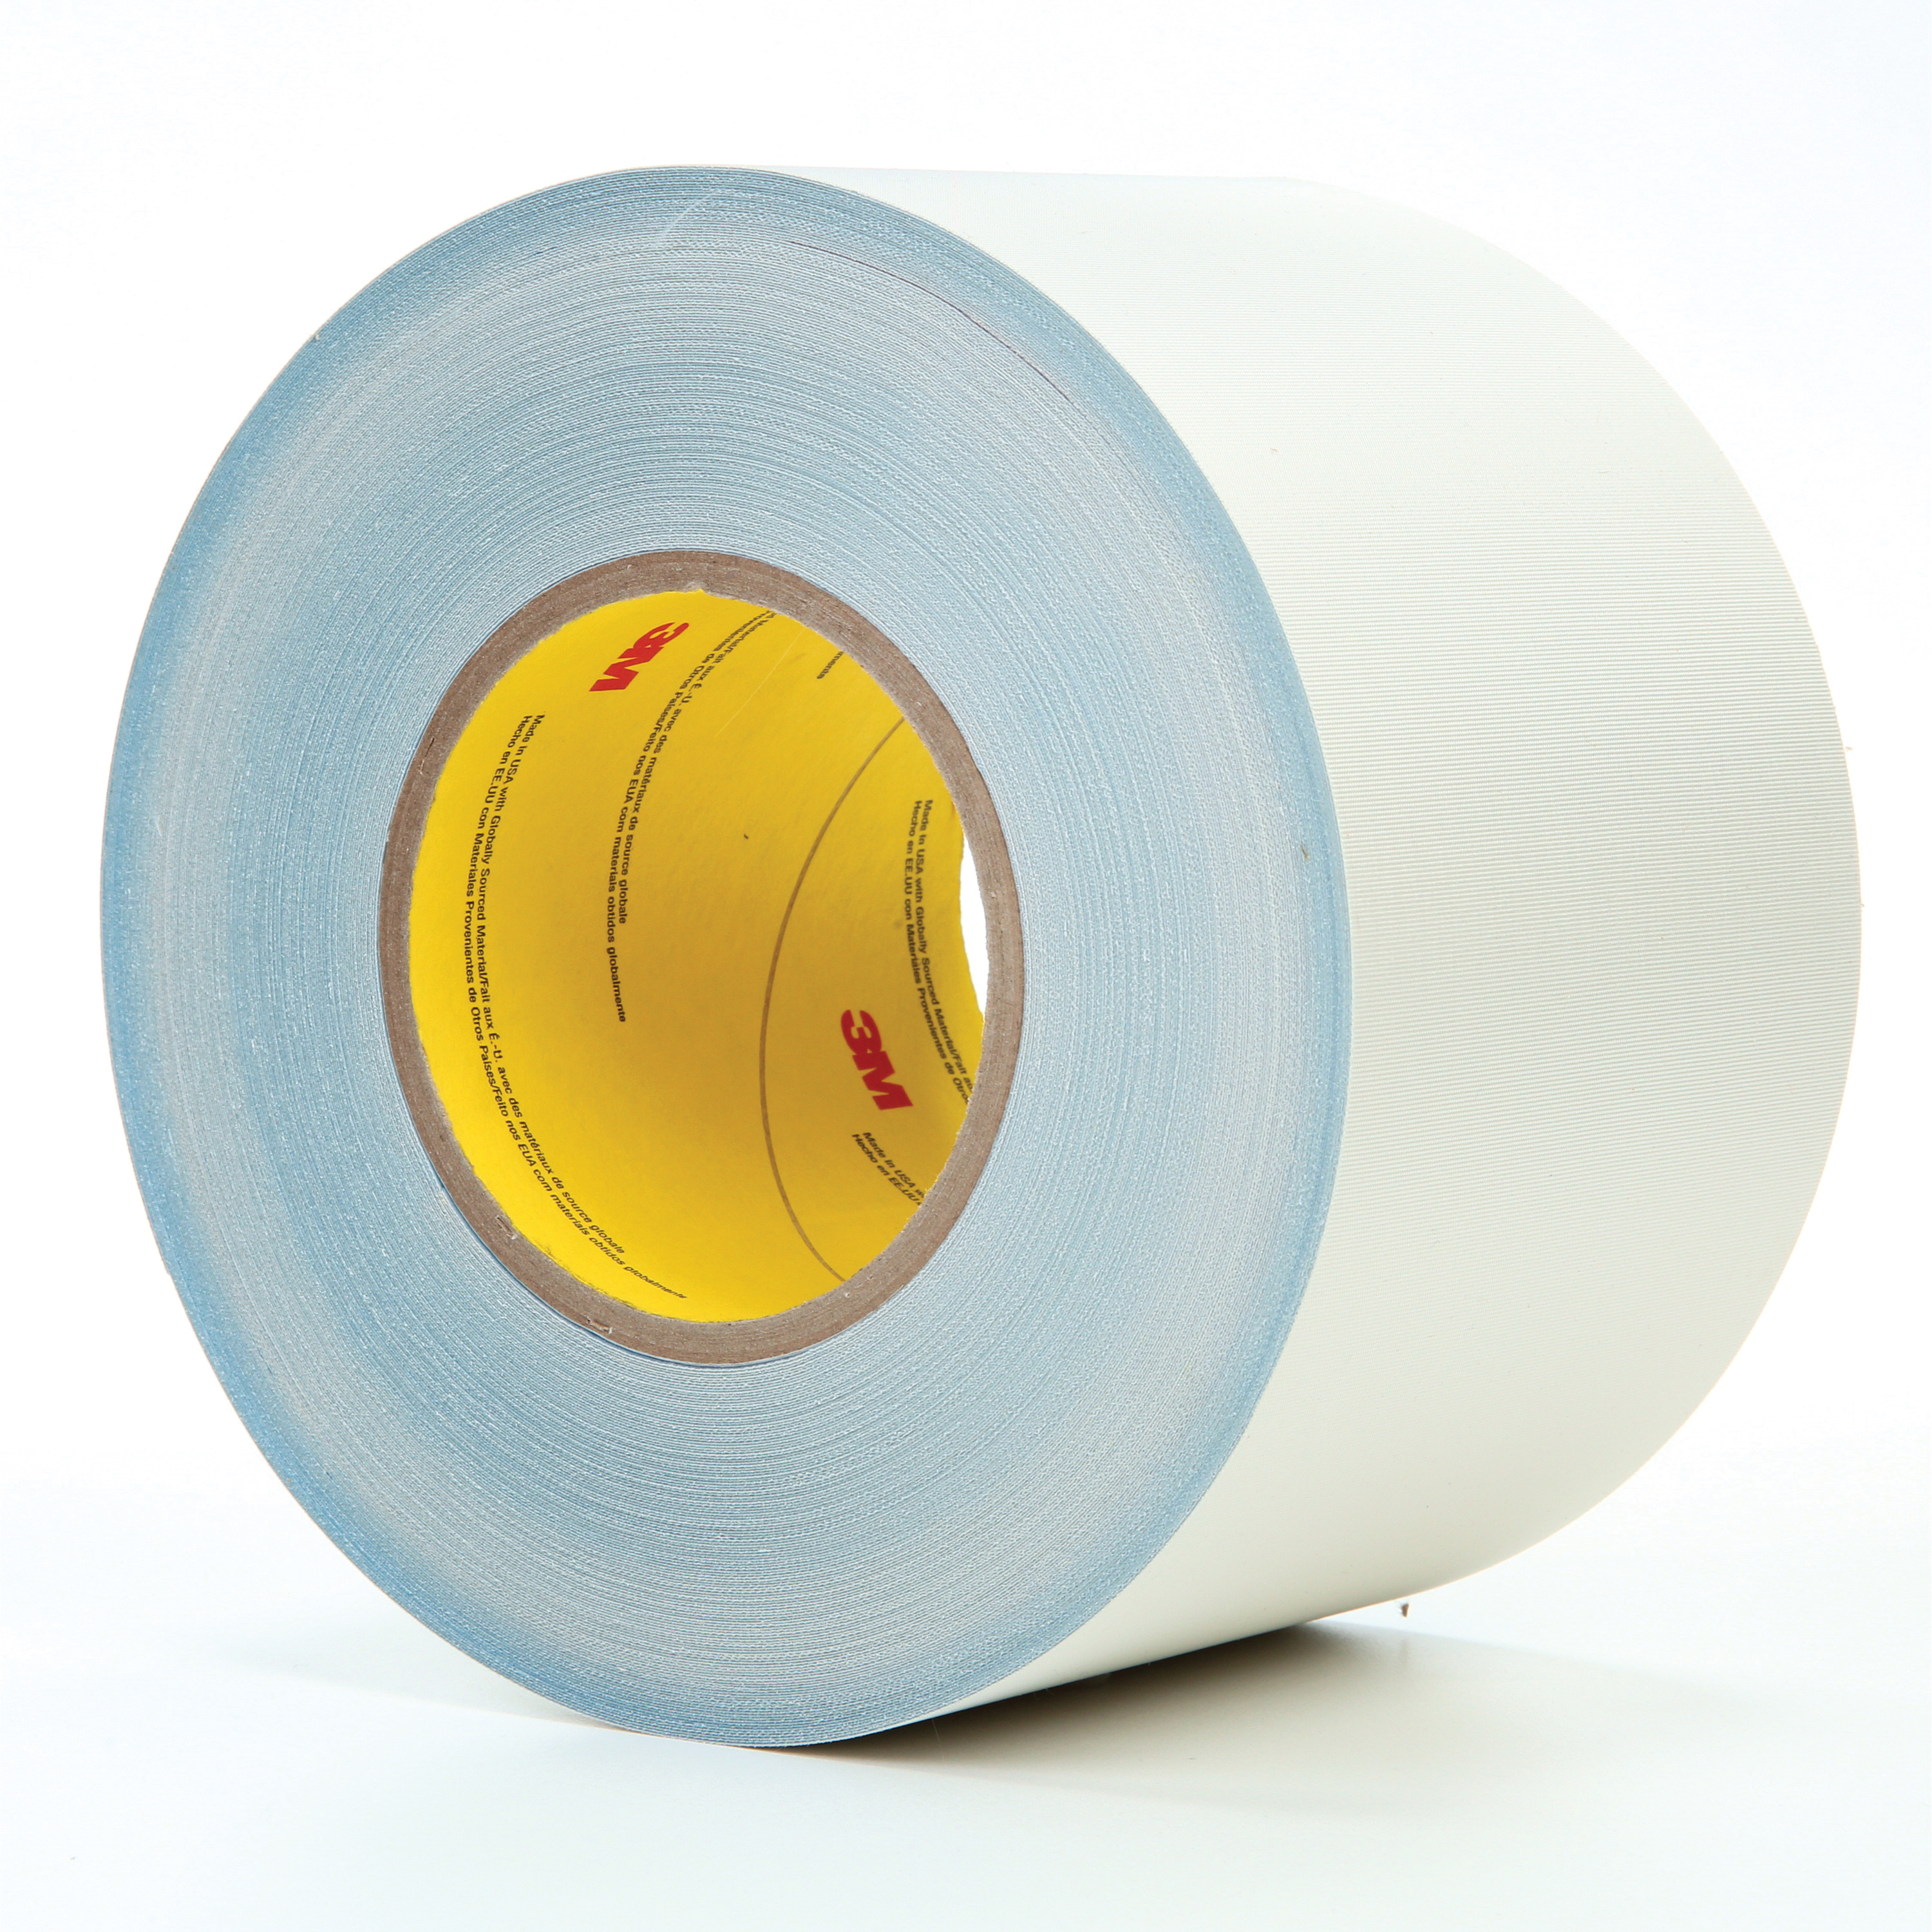 3M™ 021200-85652 Cloth Tape, 60 yd L x 4 in W, 8.3 mil THK, Thermoset Rubber Resin Adhesive, Glass Cloth Backing, White